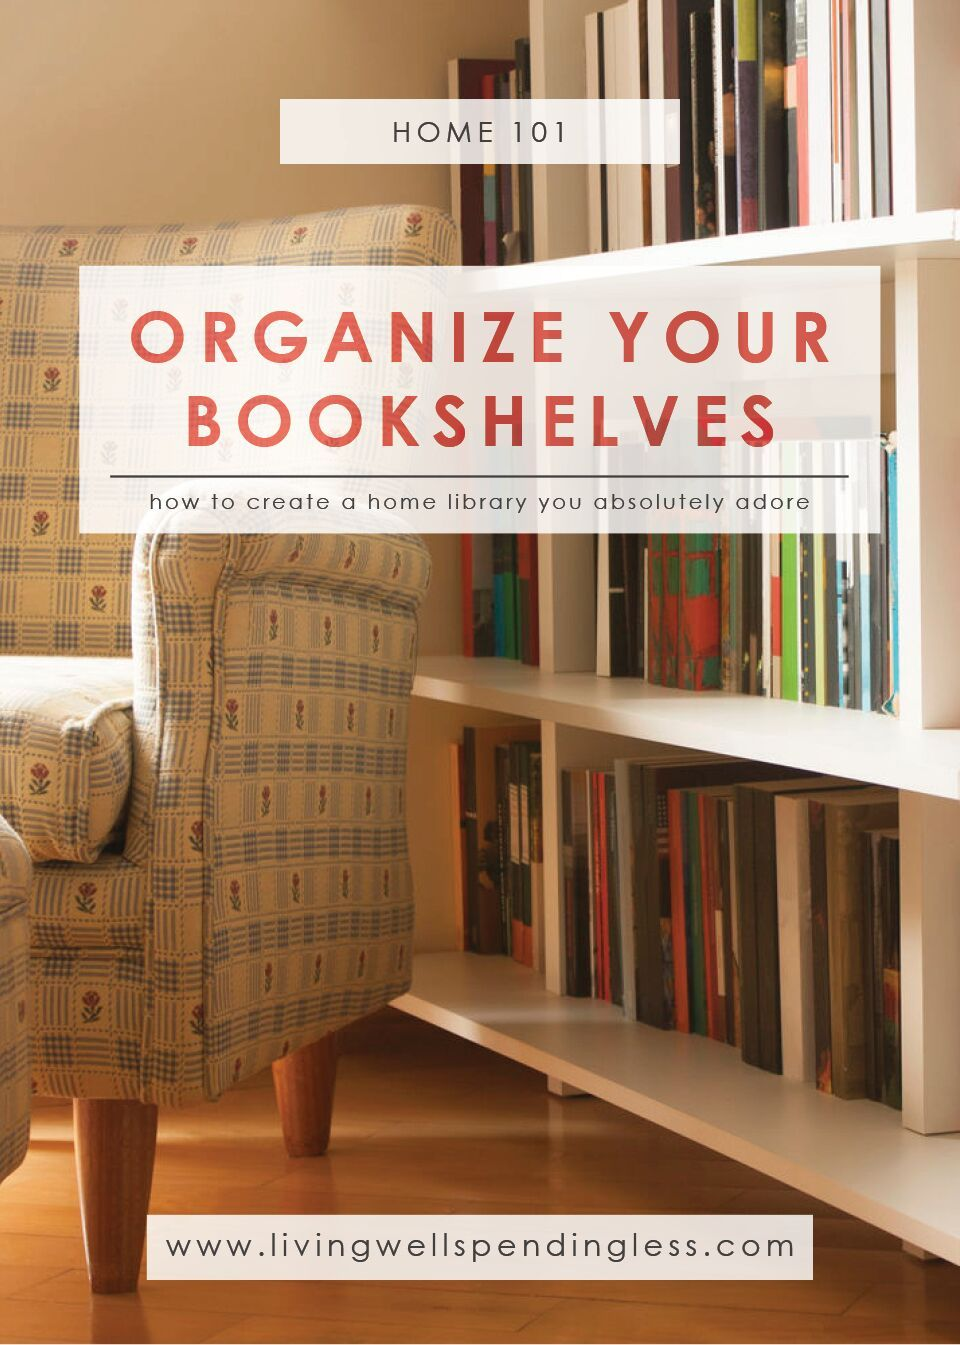 How To Organize Your Bookshelves How To Create A Home Library Home Library Bookshelf Organization Organizing Your Home,Ikea Bathroom Storage Cabinets Uk